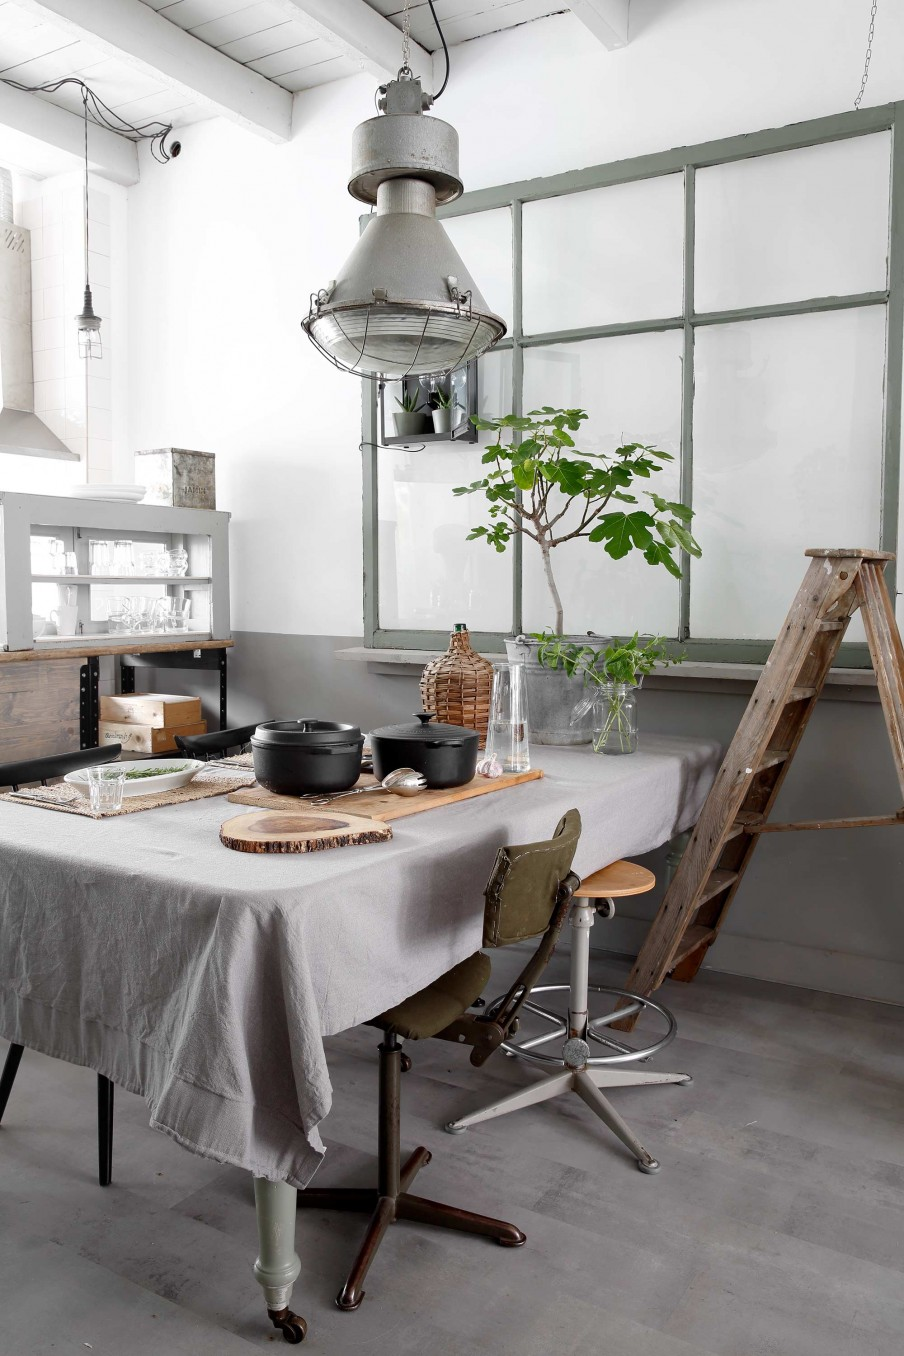 A muted palette, textures and plants everywhere, some beautiful vintage pieces, this is a house tour not to be missed!